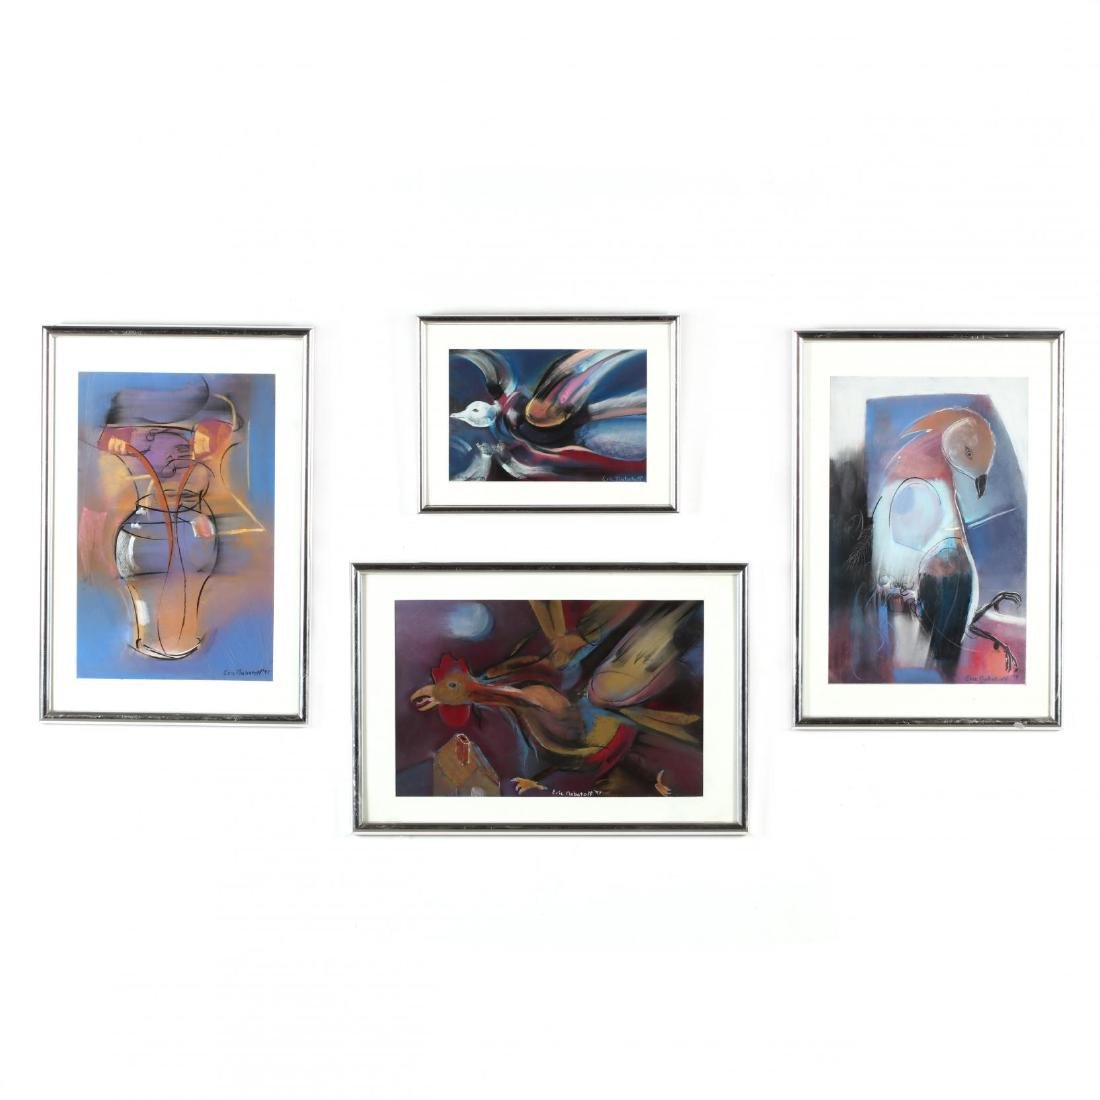 Eric Nabatoff (NC), Four Works on Paper